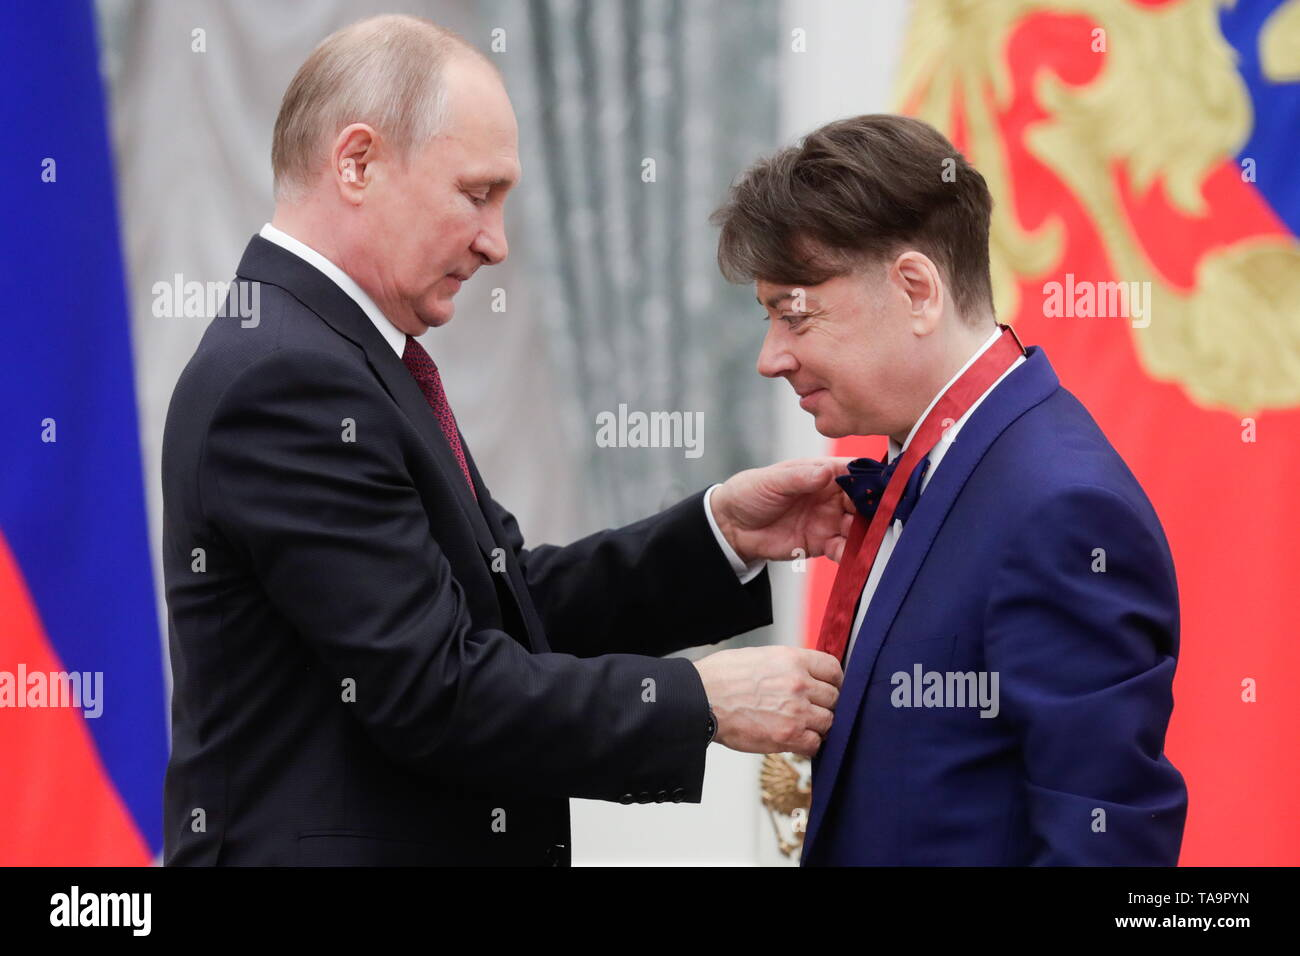 Moscow, Russia. 23rd May, 2019. MOSCOW, RUSSIA - MAY 23, 2019: Russia's President Vladimir Putin (L) and Russian fashion designer Valentin Yudashkin, awarded the Order of Merit for the Fatherland (3rd class), during a ceremony to present state decorations at Moscow's Kremlin. Mikhail Metzel/TASS Credit: ITAR-TASS News Agency/Alamy Live News - Stock Image